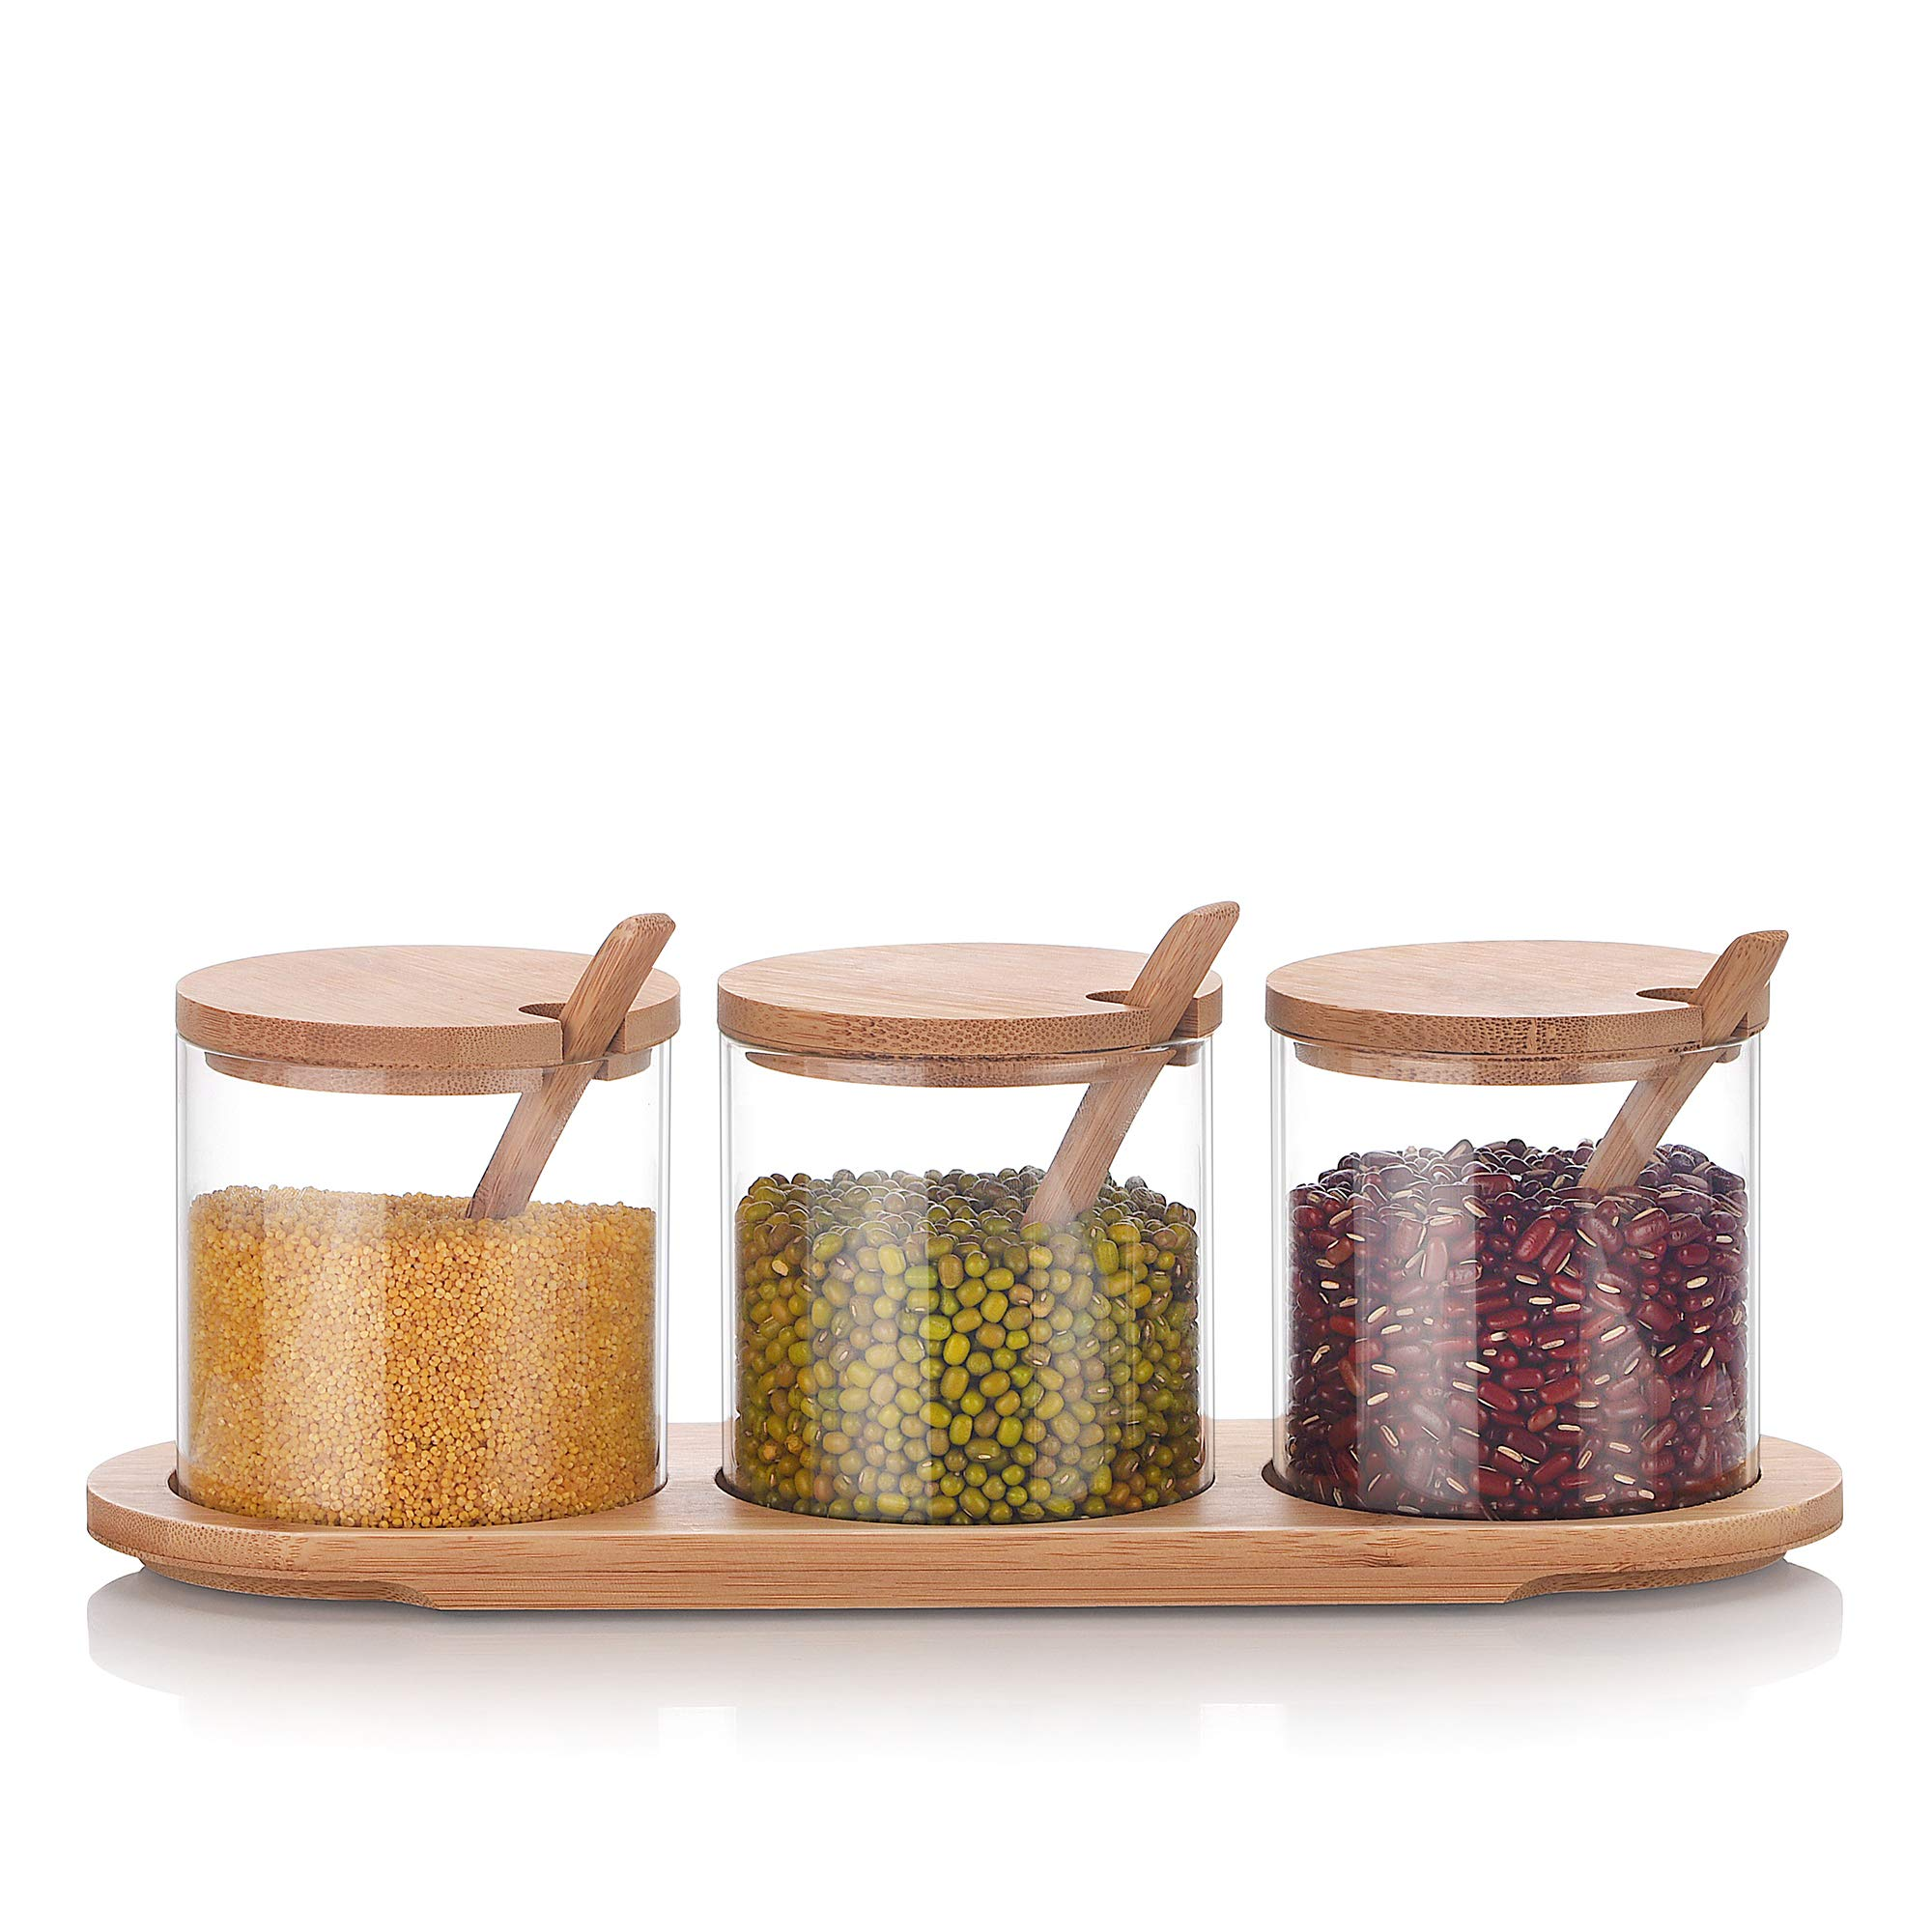 Cupwind 3 PCS/SET Kitchen Glass Seasoning Box with Bamboo Lid and Spoons - Clear Glass Storage Containers Condiment Jars Set with Base for Serving Spice - 10 Ounce Each